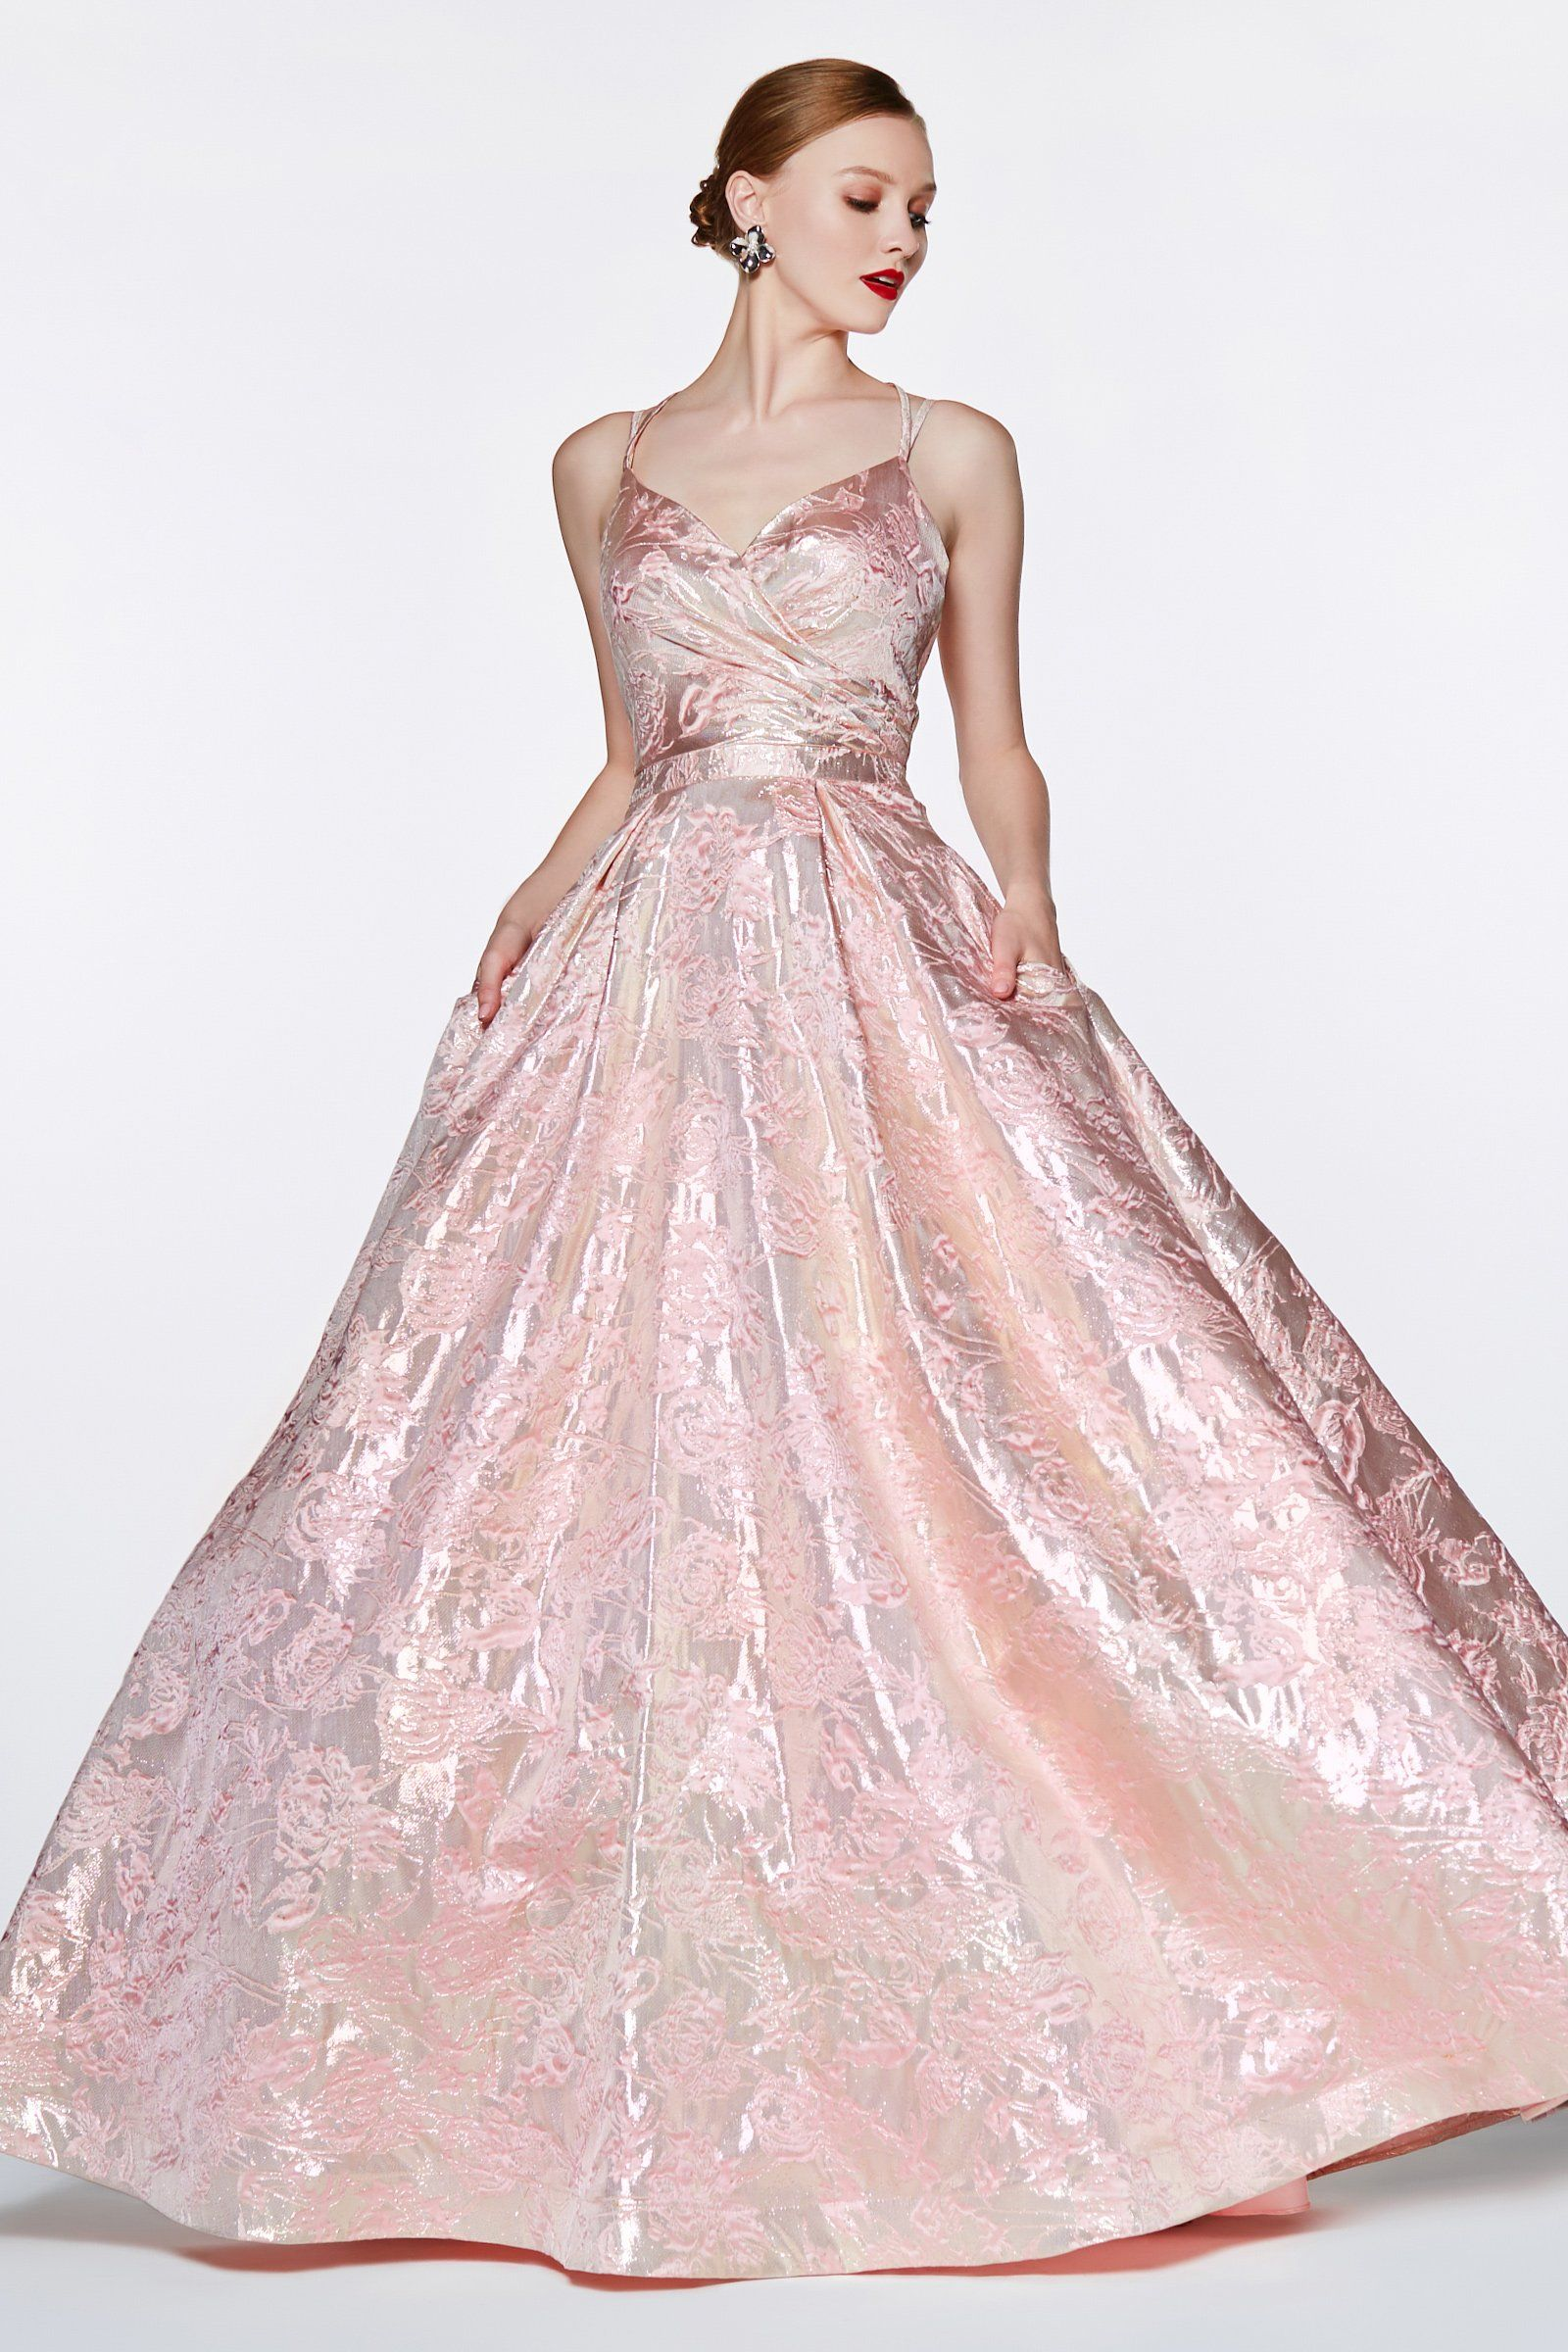 Pink Floral Brocade Gown with Open Back by Cinderella Divine CR827 | Gowns,  Formal ball gown, Evening dresses prom